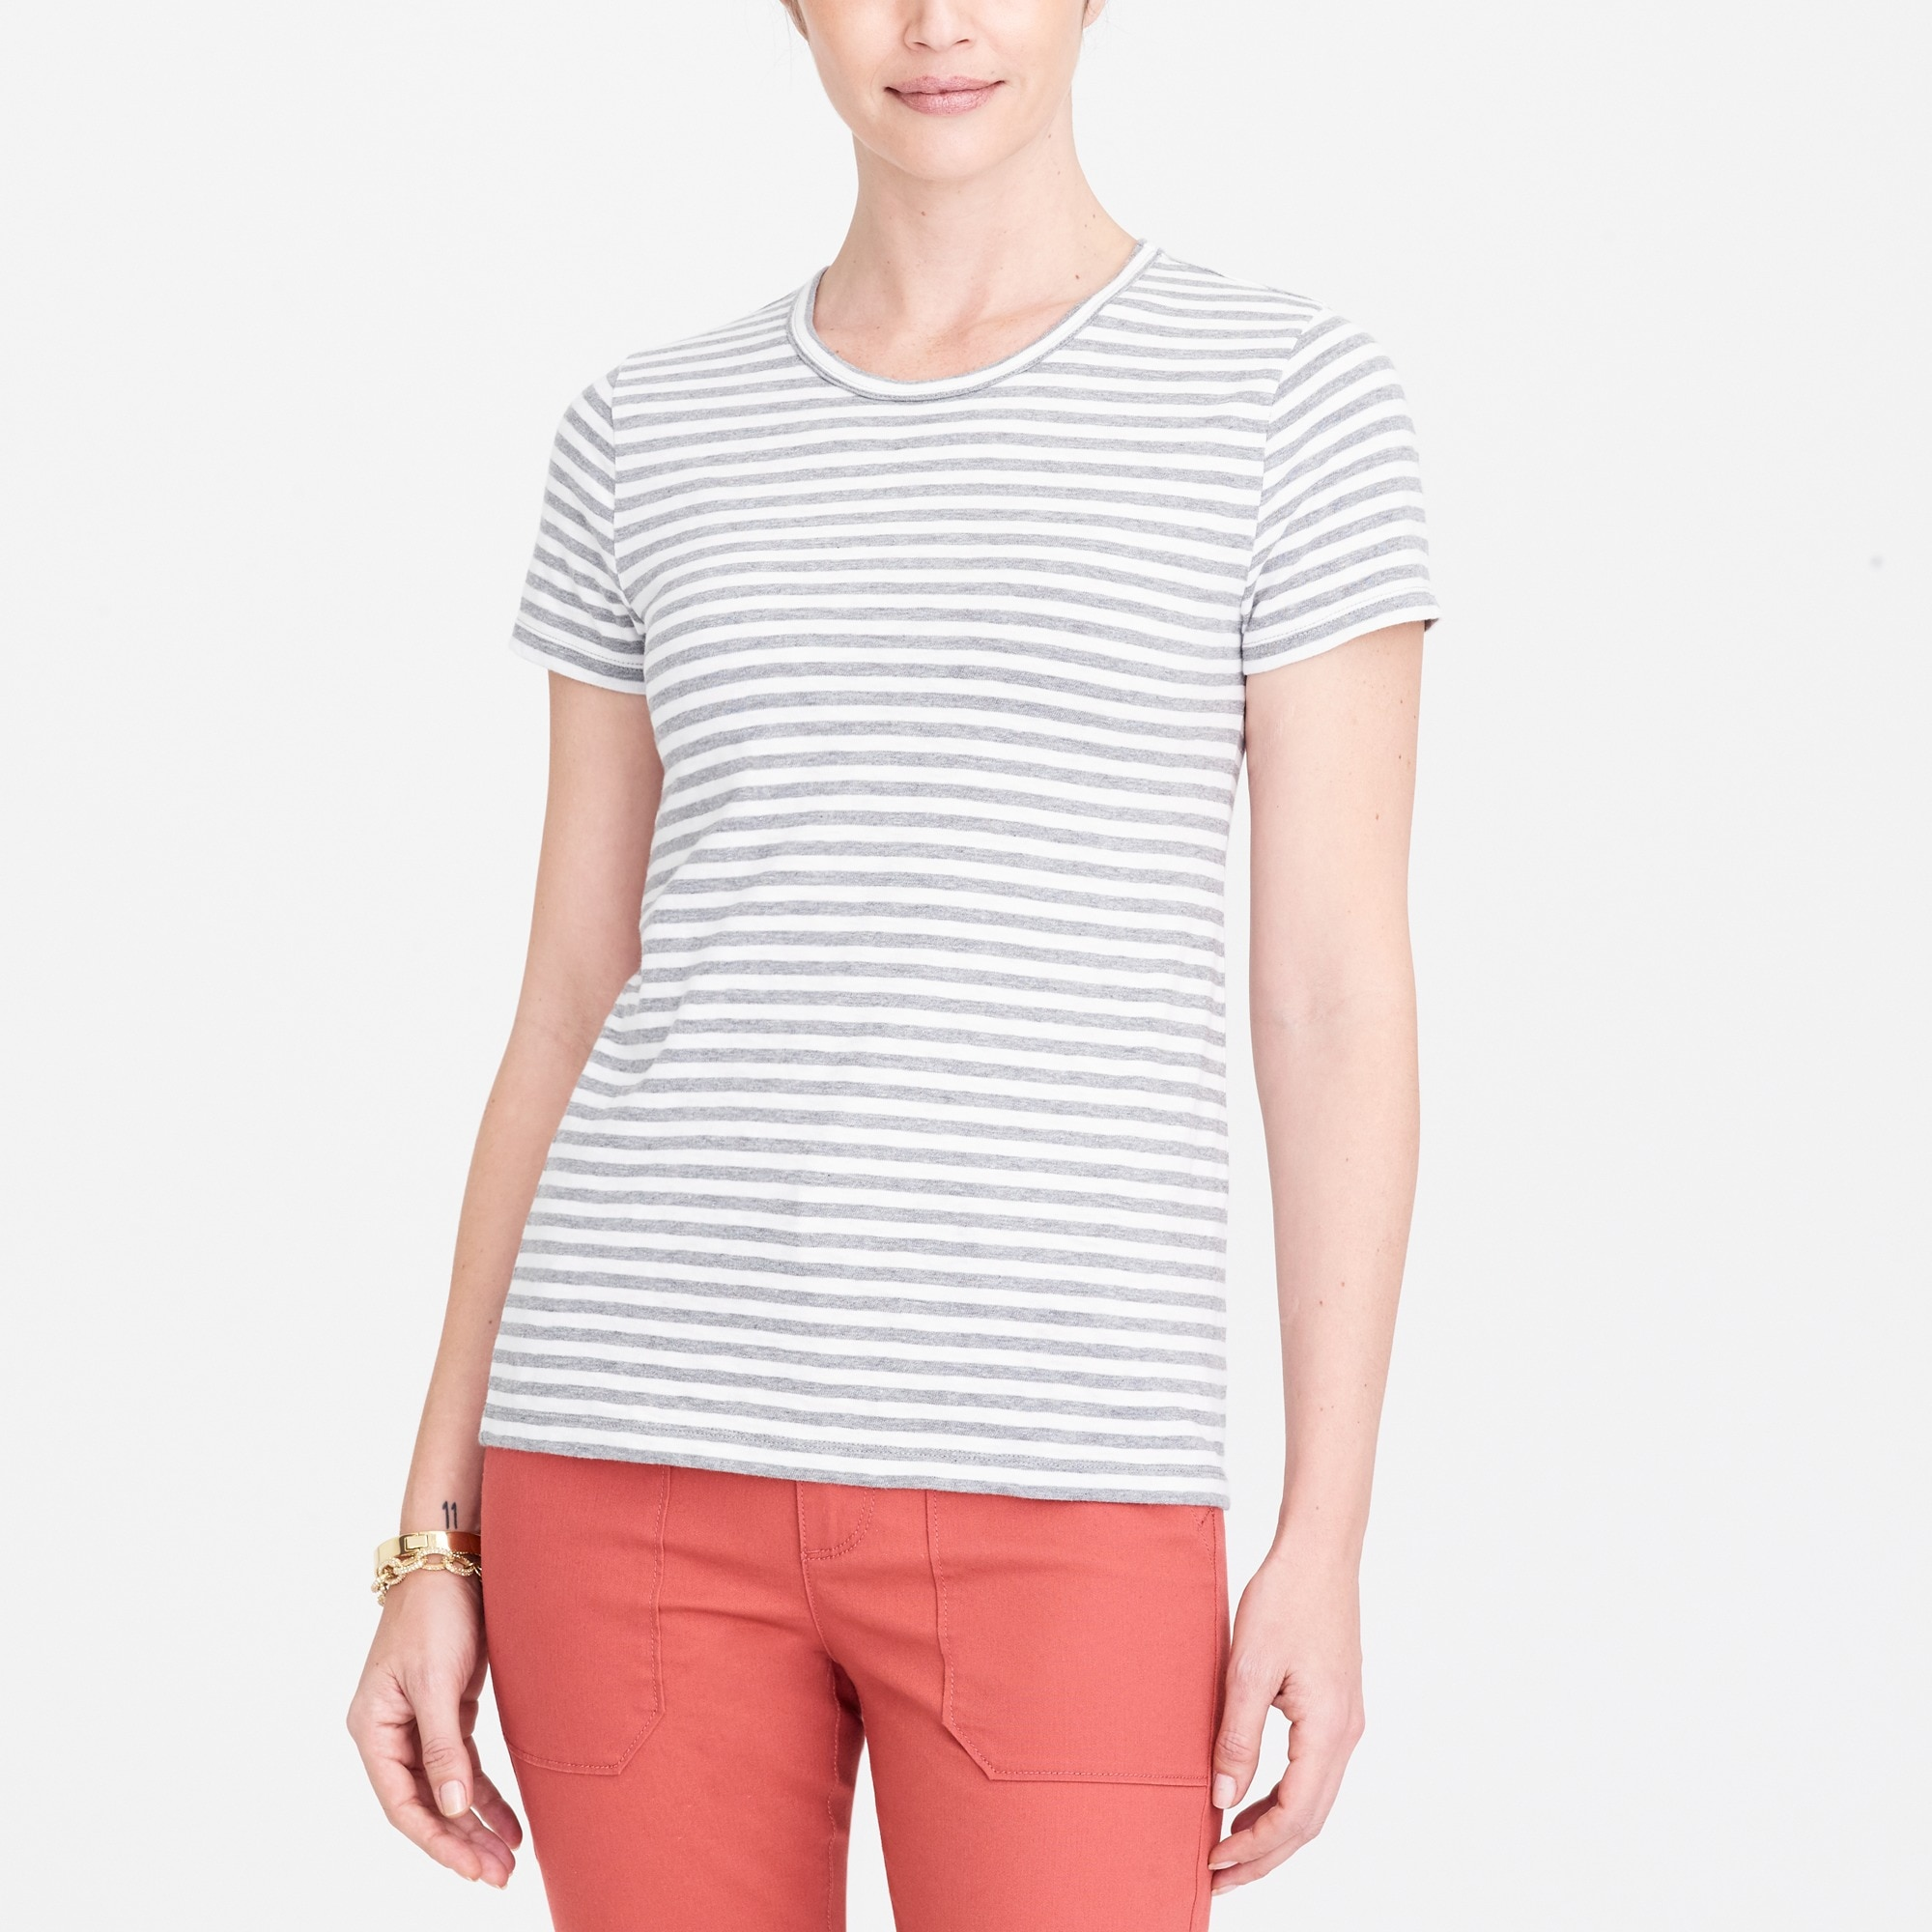 J.Crew Mercantile Striped Studio T-Shirt factorywomen new arrivals c